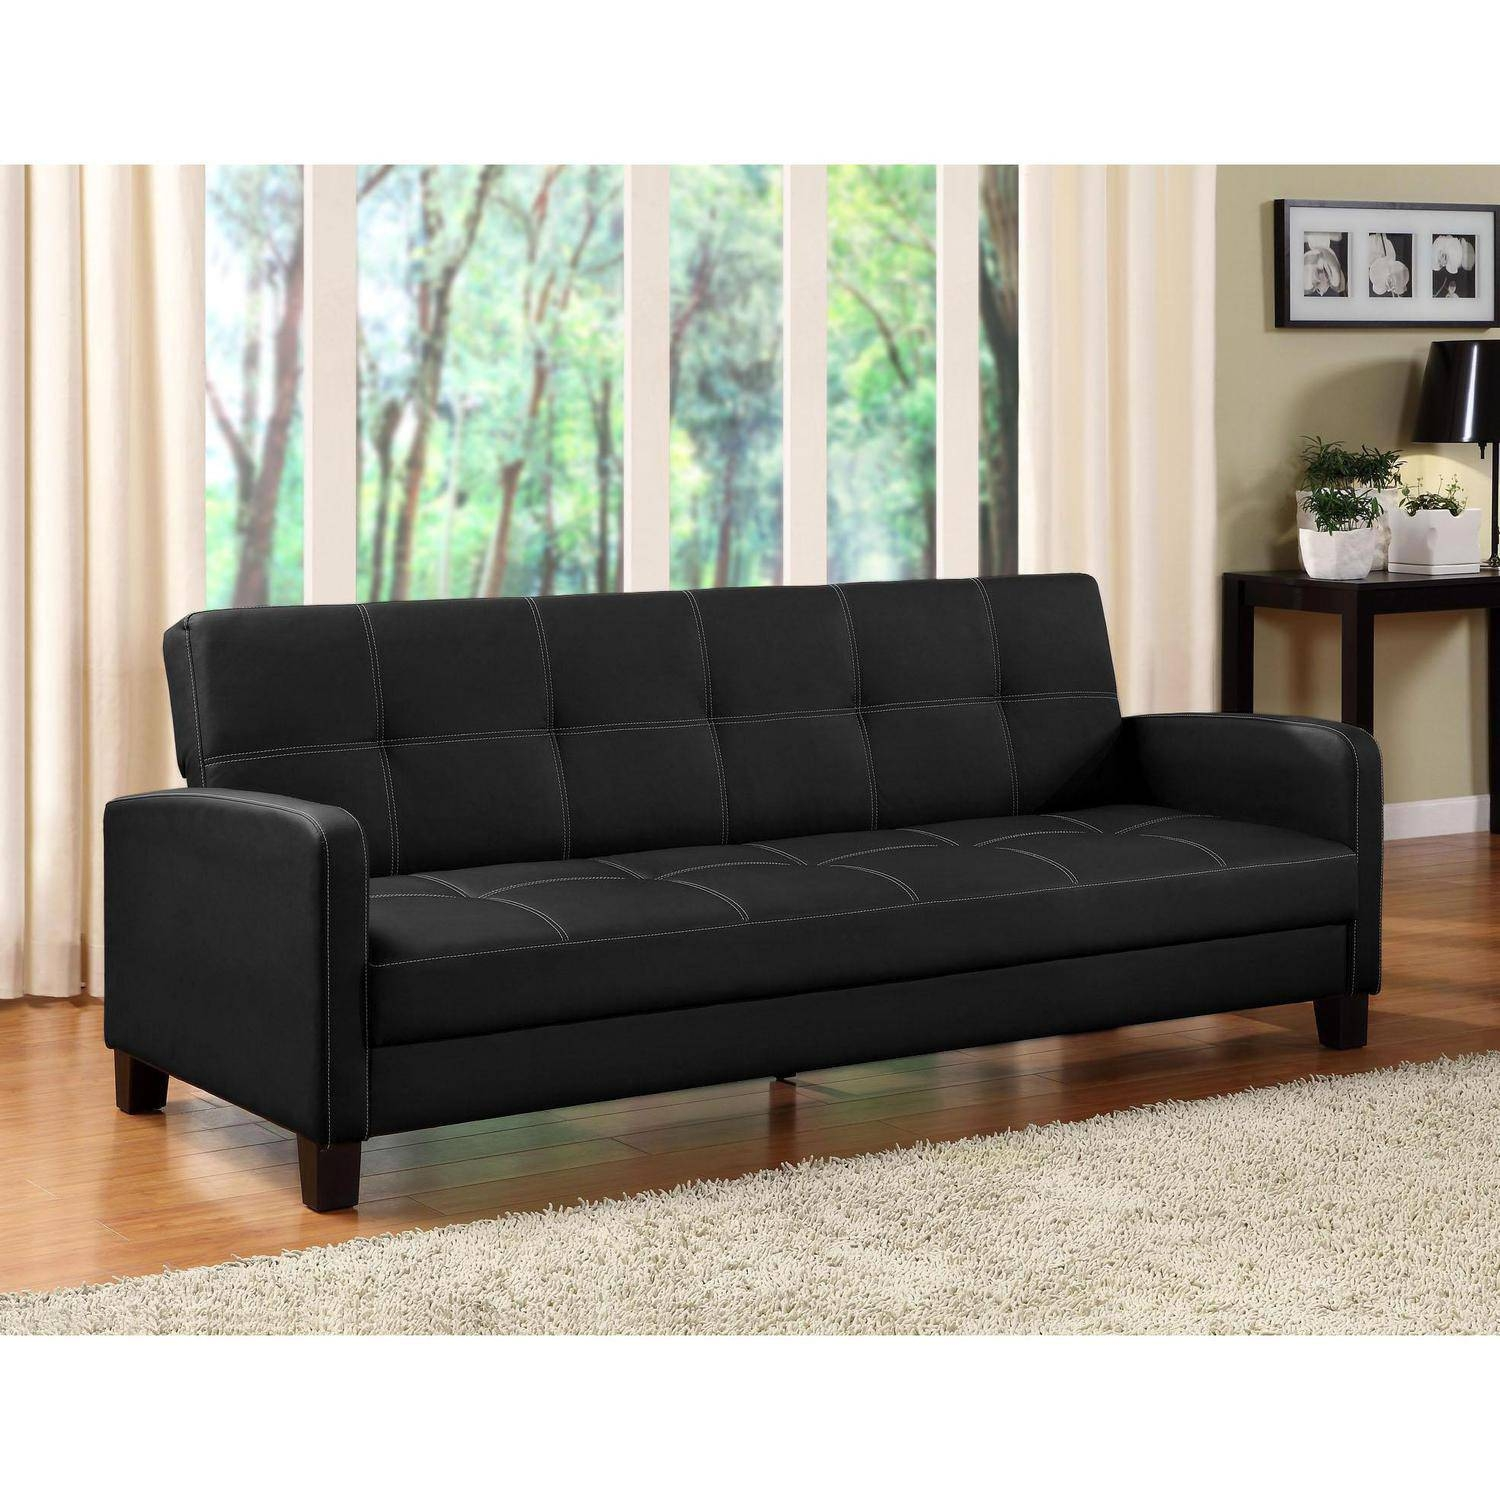 Sofas Center : Small Size Sofa Trend For Your Sofas And Couches within Sofa Trend (Image 18 of 25)